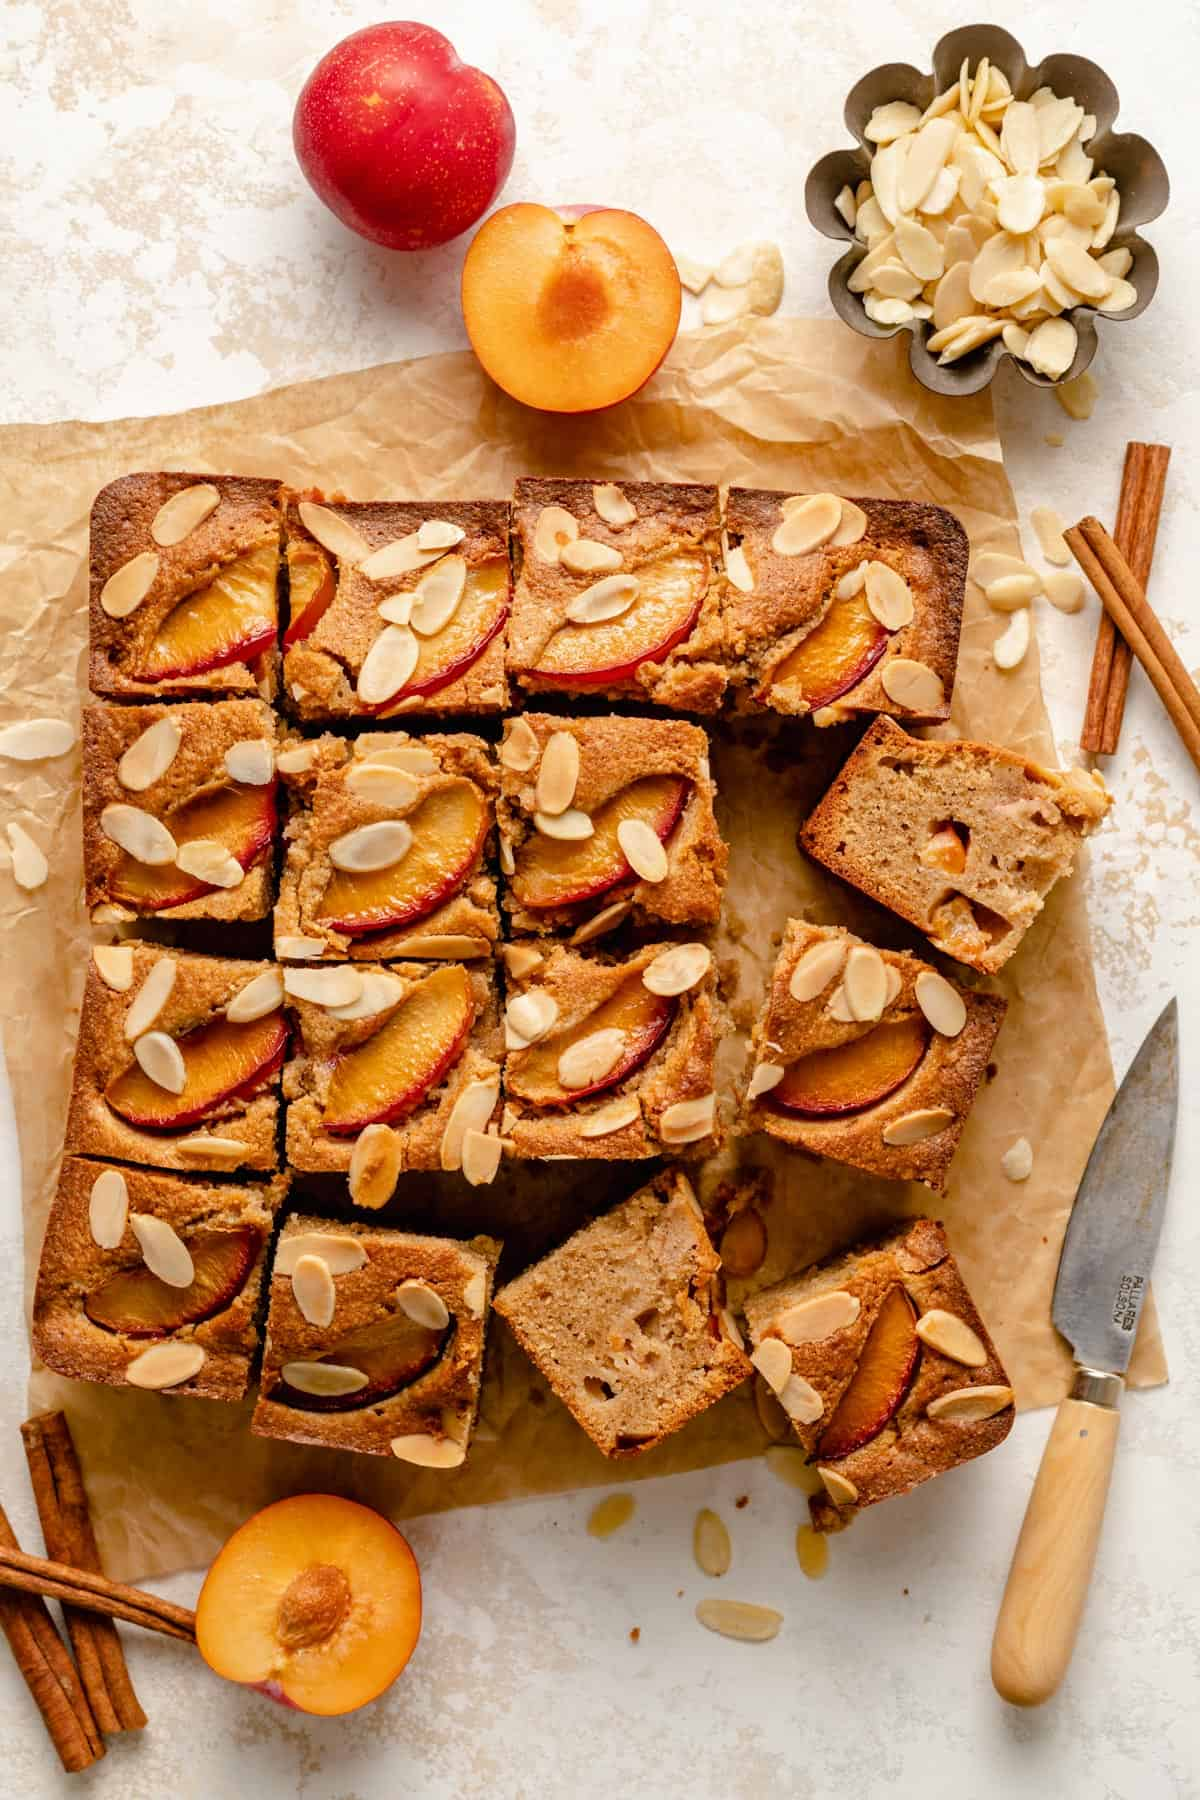 gluten free almond plum cake slices turned up in an array with a knife nearby